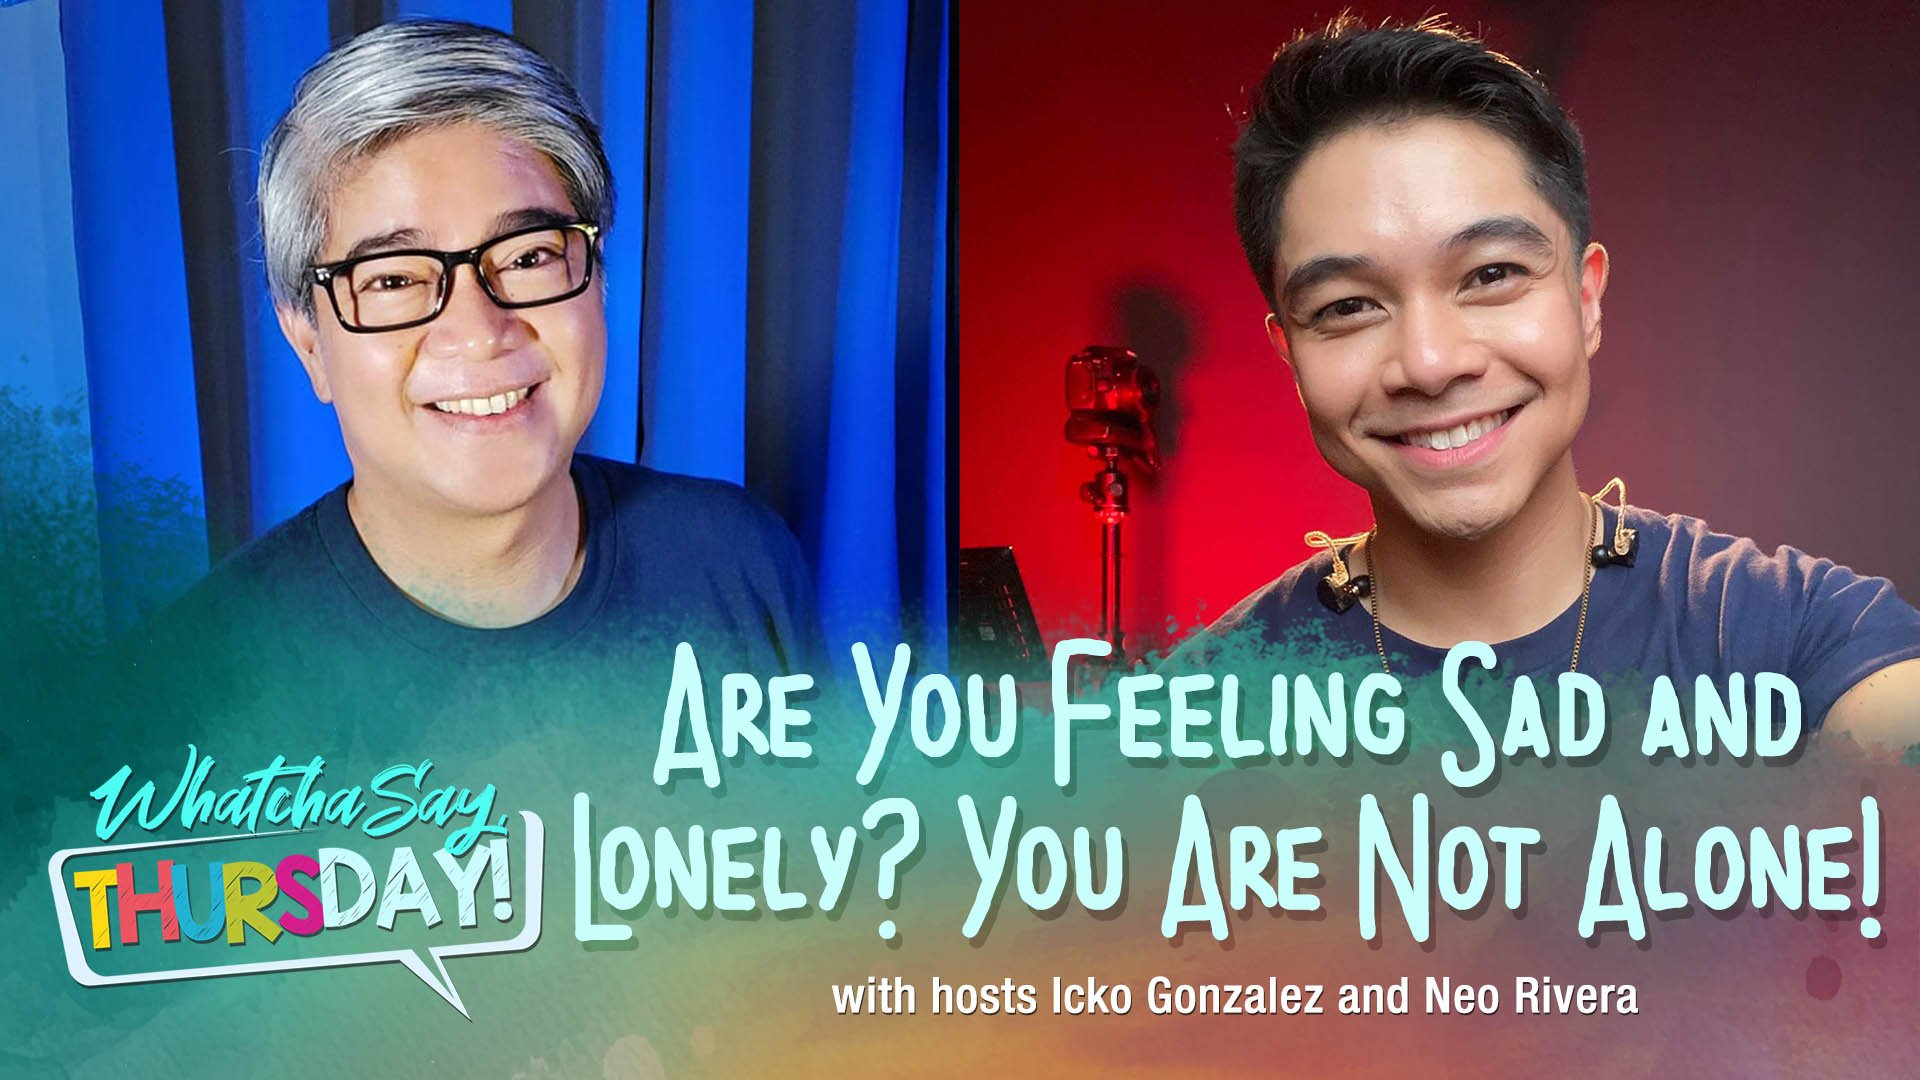 CBN Asia LIVE | Are You Feeling Sad and Lonely? | WhatchaSay, Thursday